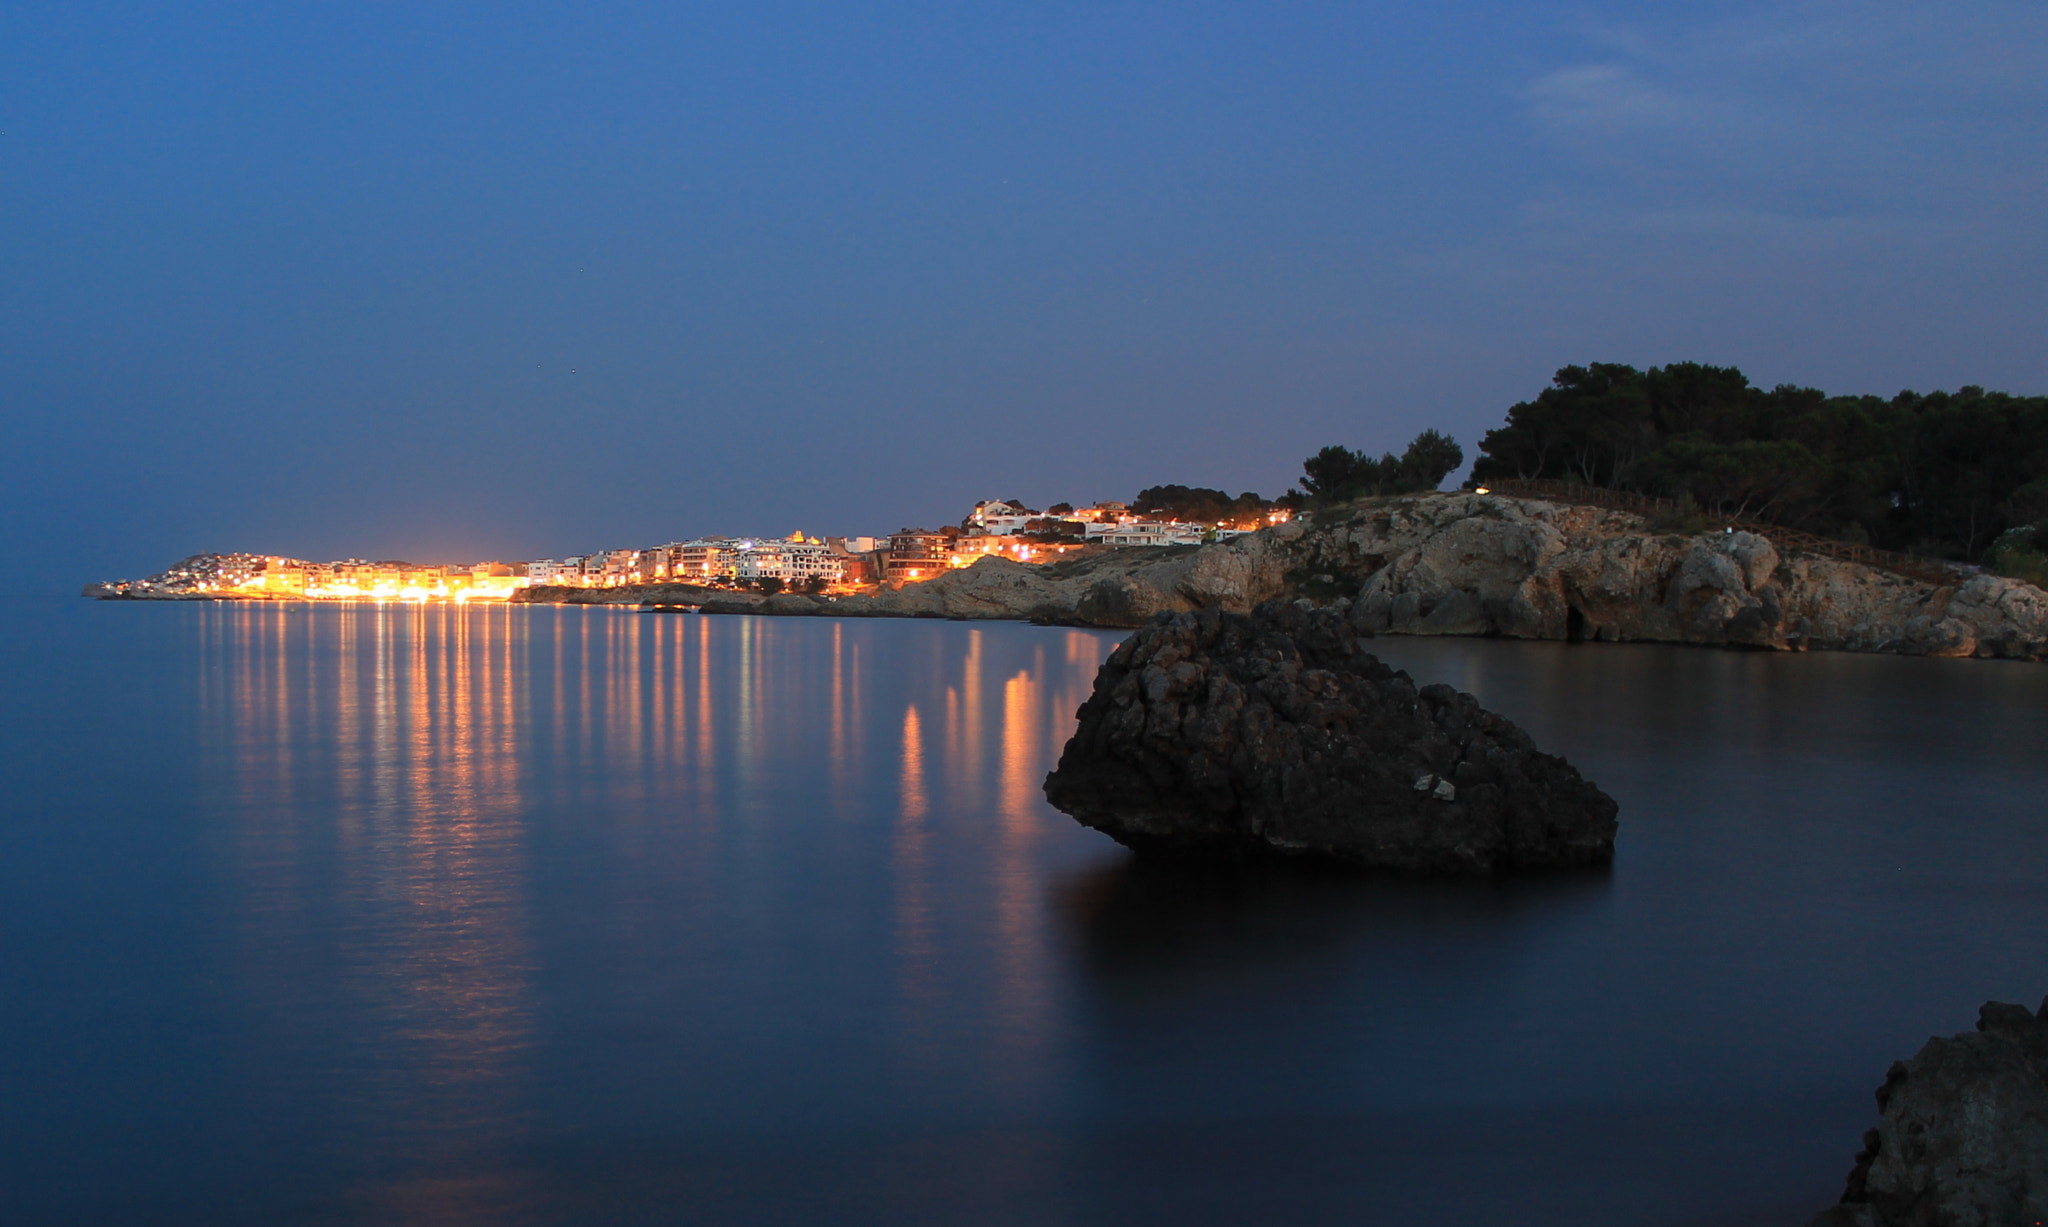 Photograph The beach at night by Jordi Freixas on 500px